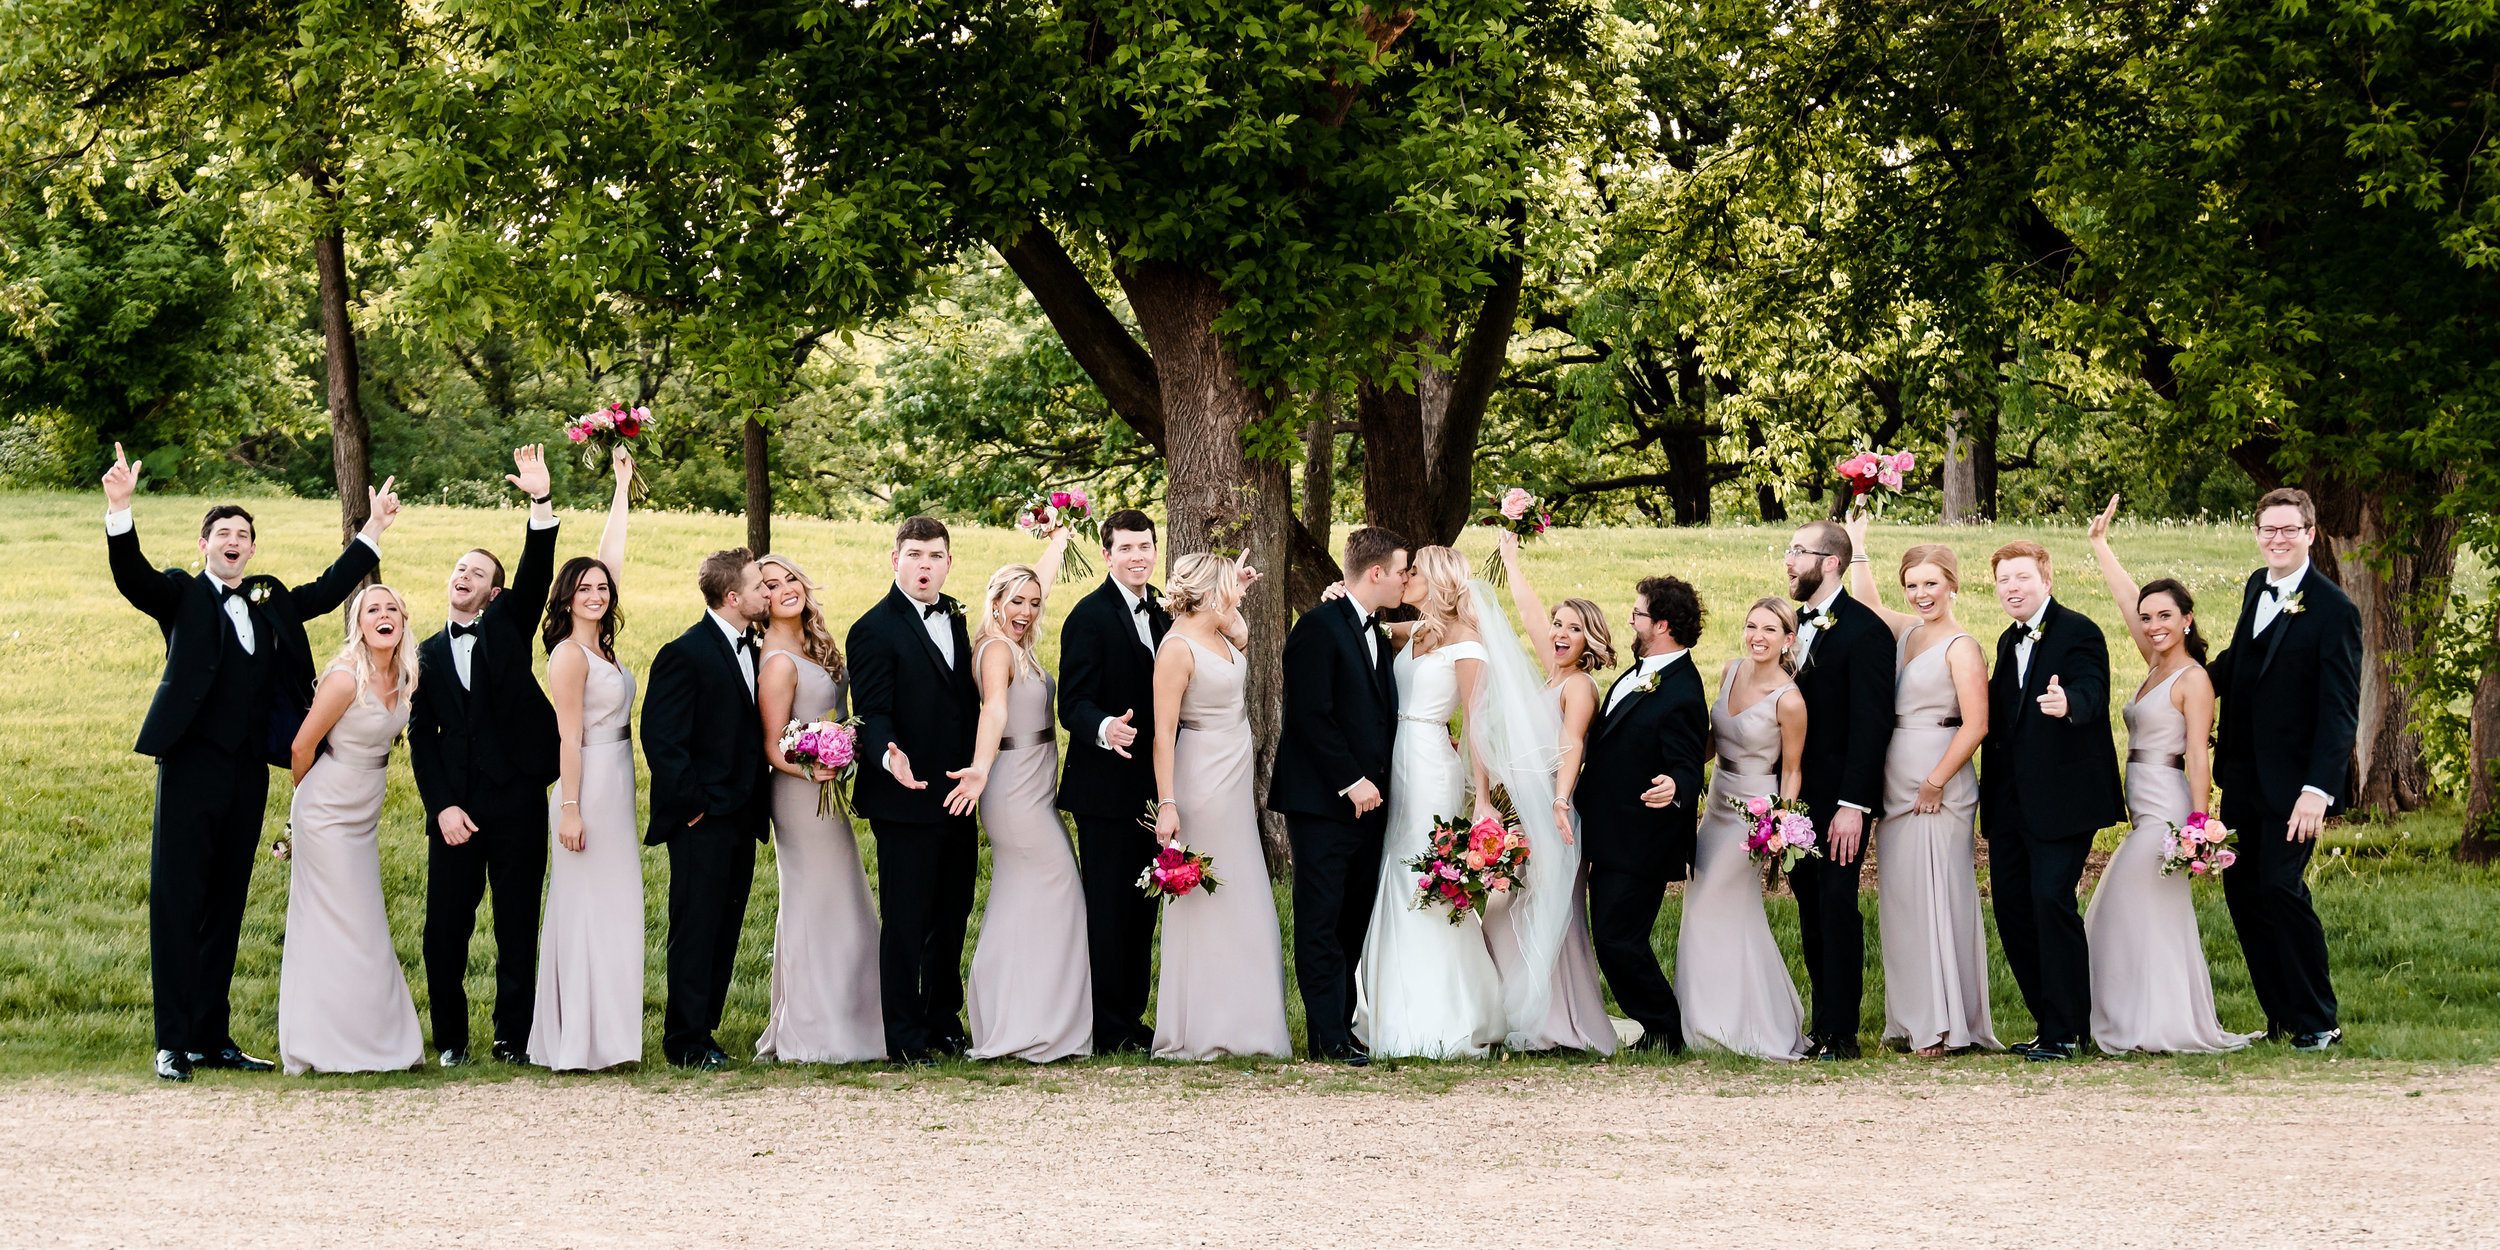 Amanda + Justin - Wedding Album_21.jpg